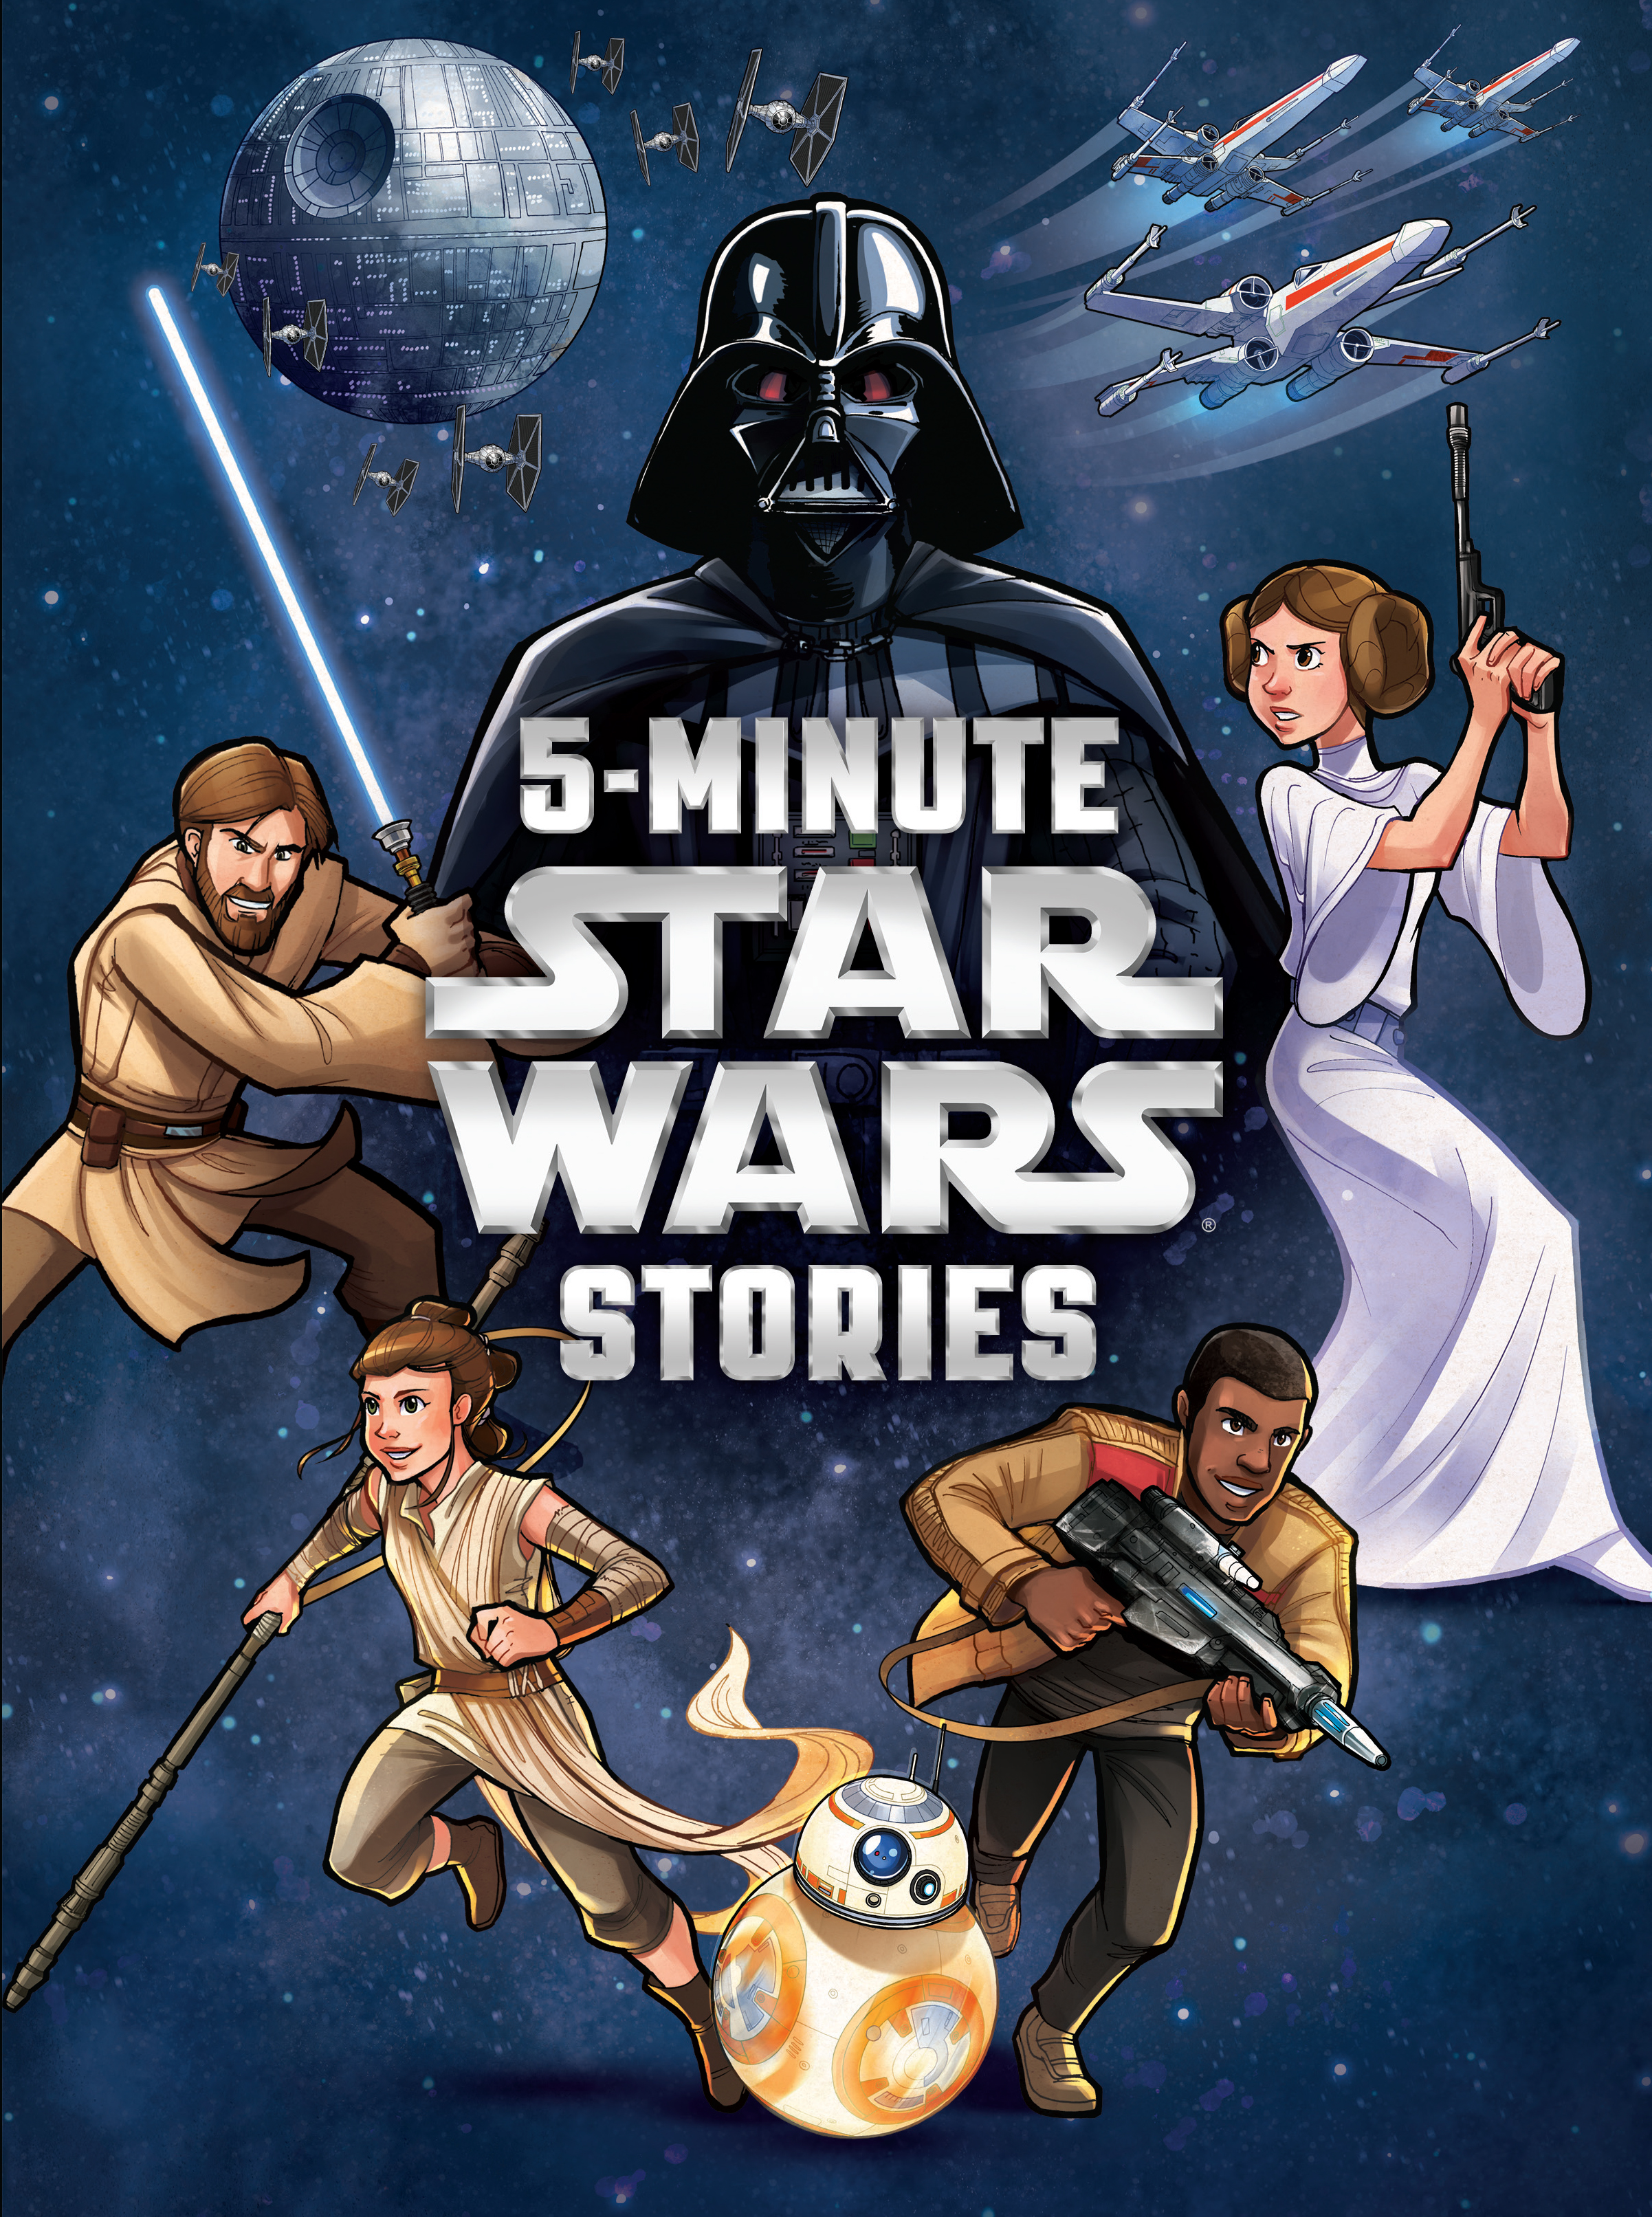 The Force Awakens Books Coming December 18 - UPDATED!